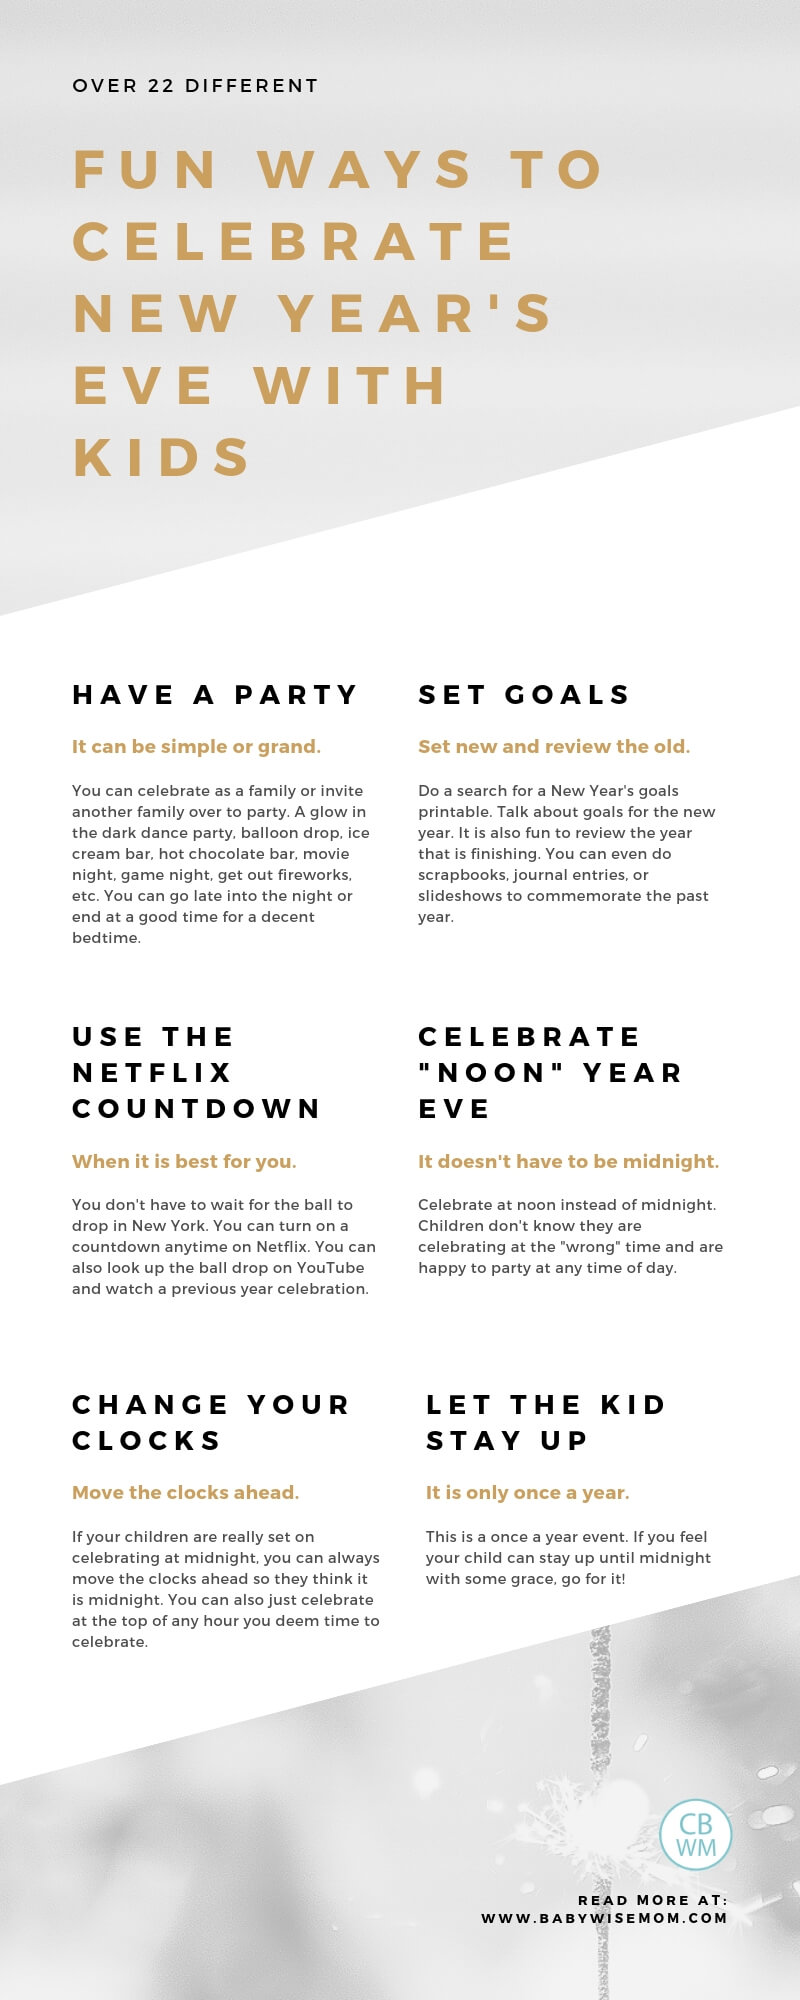 Over 22 ways to celebrate New Year's Eve. How to celebrate New Year's Eve with kids. Family activities and ideas to ring in the new year and party with your children.